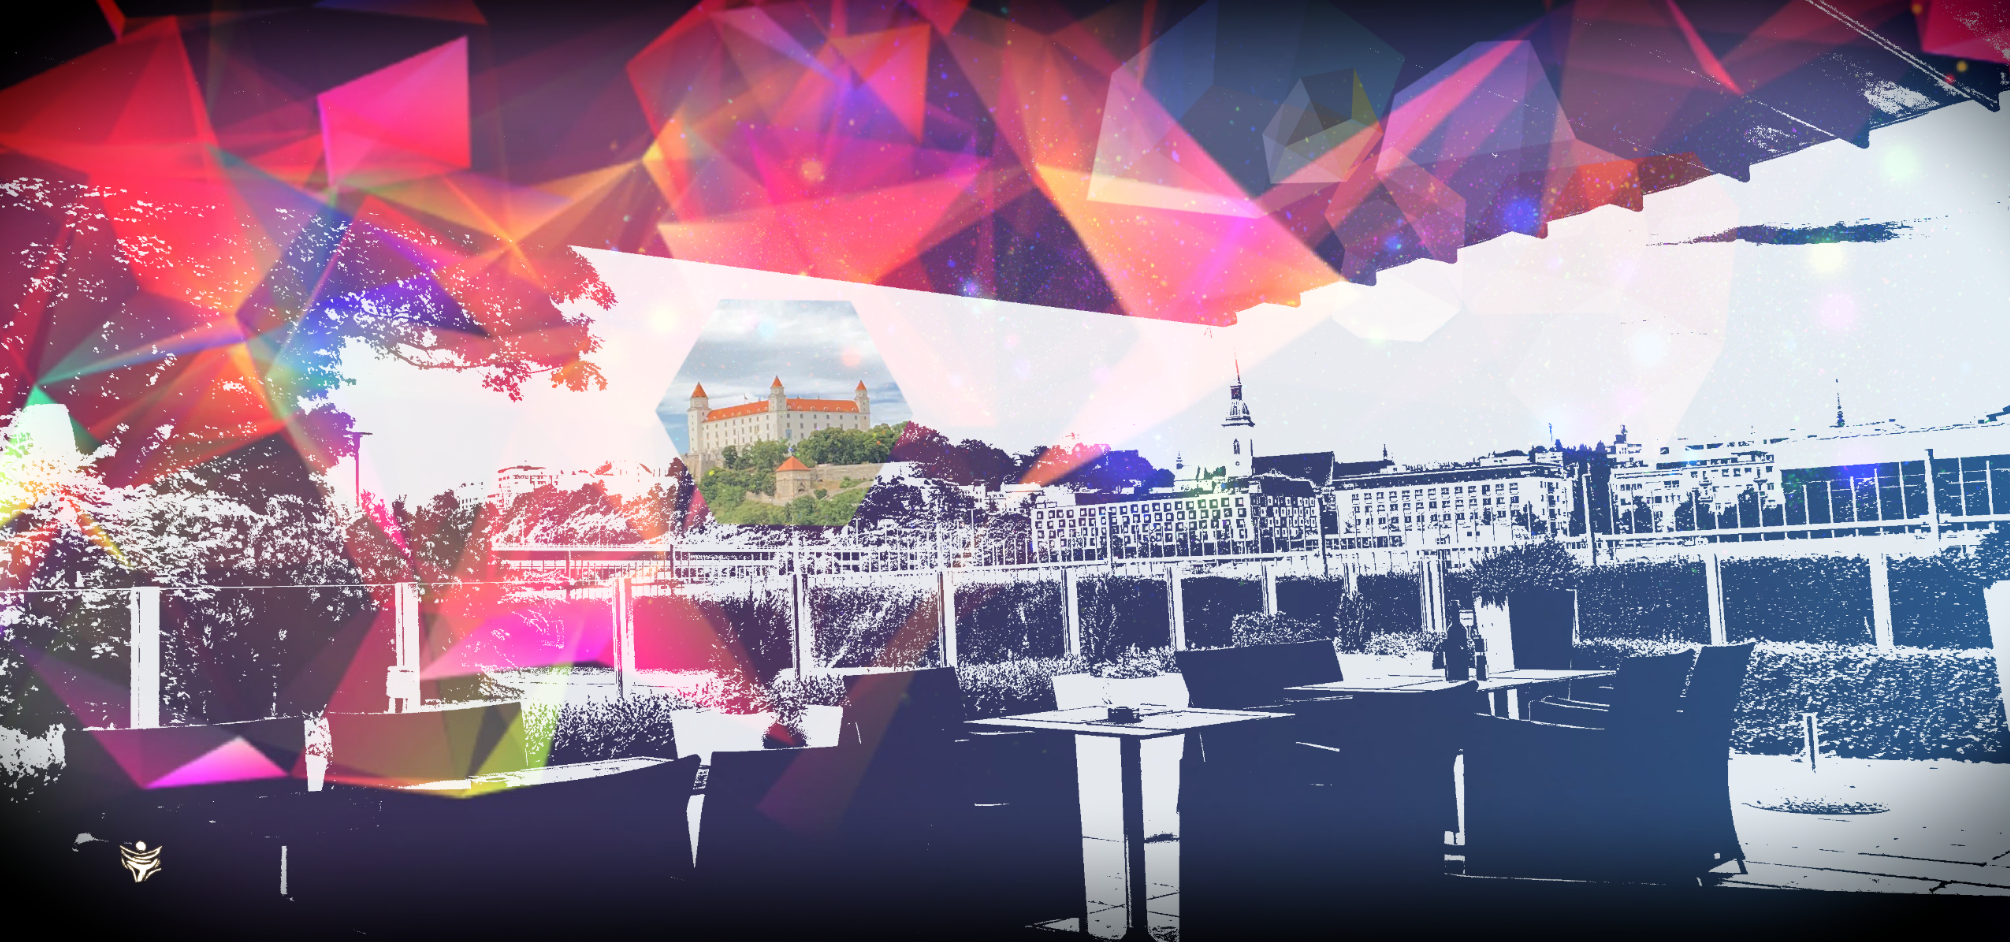 BRATISLAVA digital abstract art by Ron Labryzz, #rlart